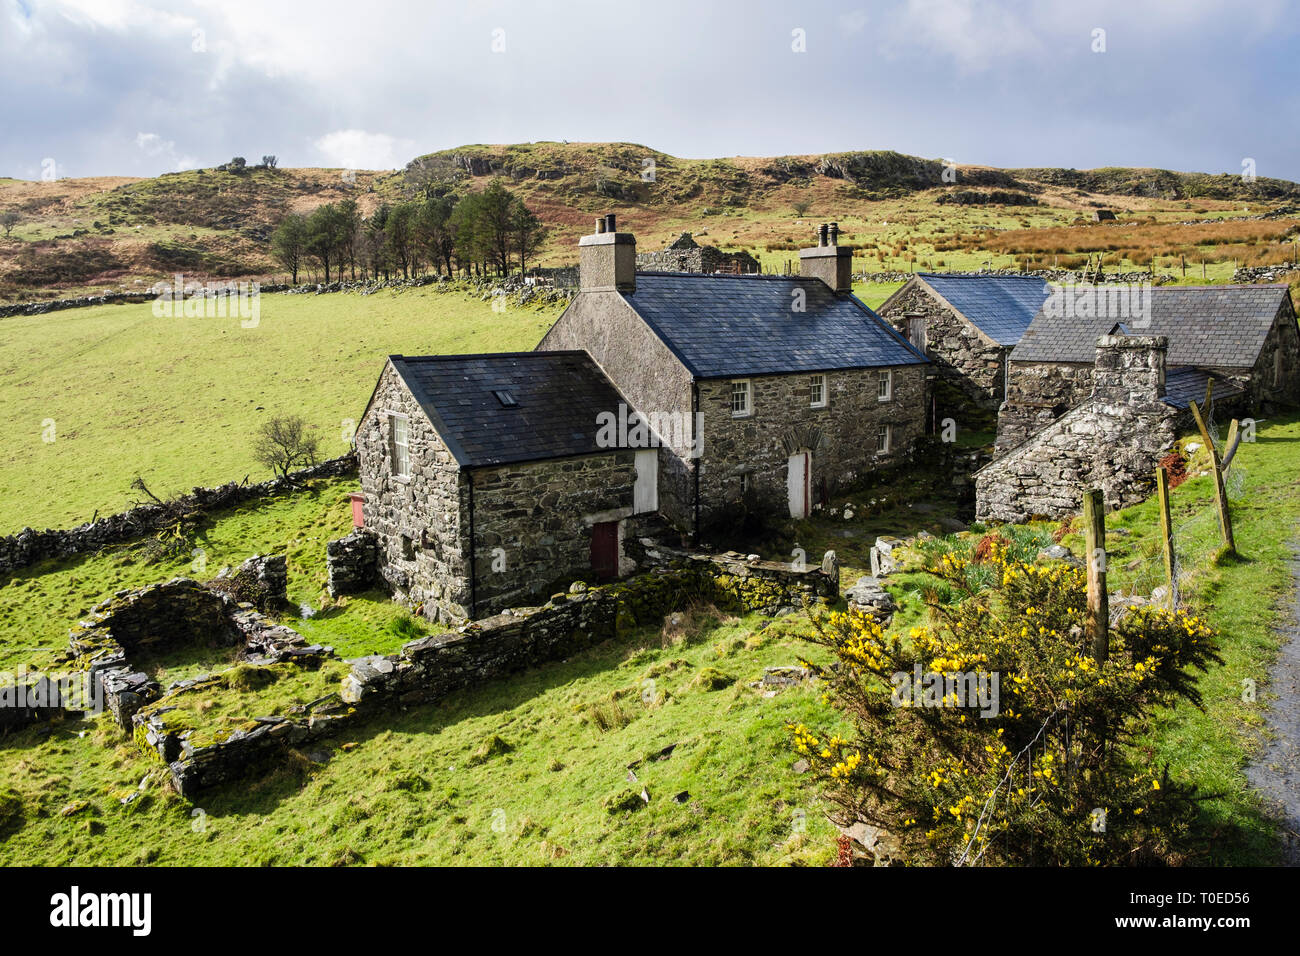 """""""Erwsuran"""" a traditional old Welsh stone farm house with slate roof and outbuildings in hills of Snowdonia. Tremadog Gwynedd north Wales UK Britain Stock Photo"""